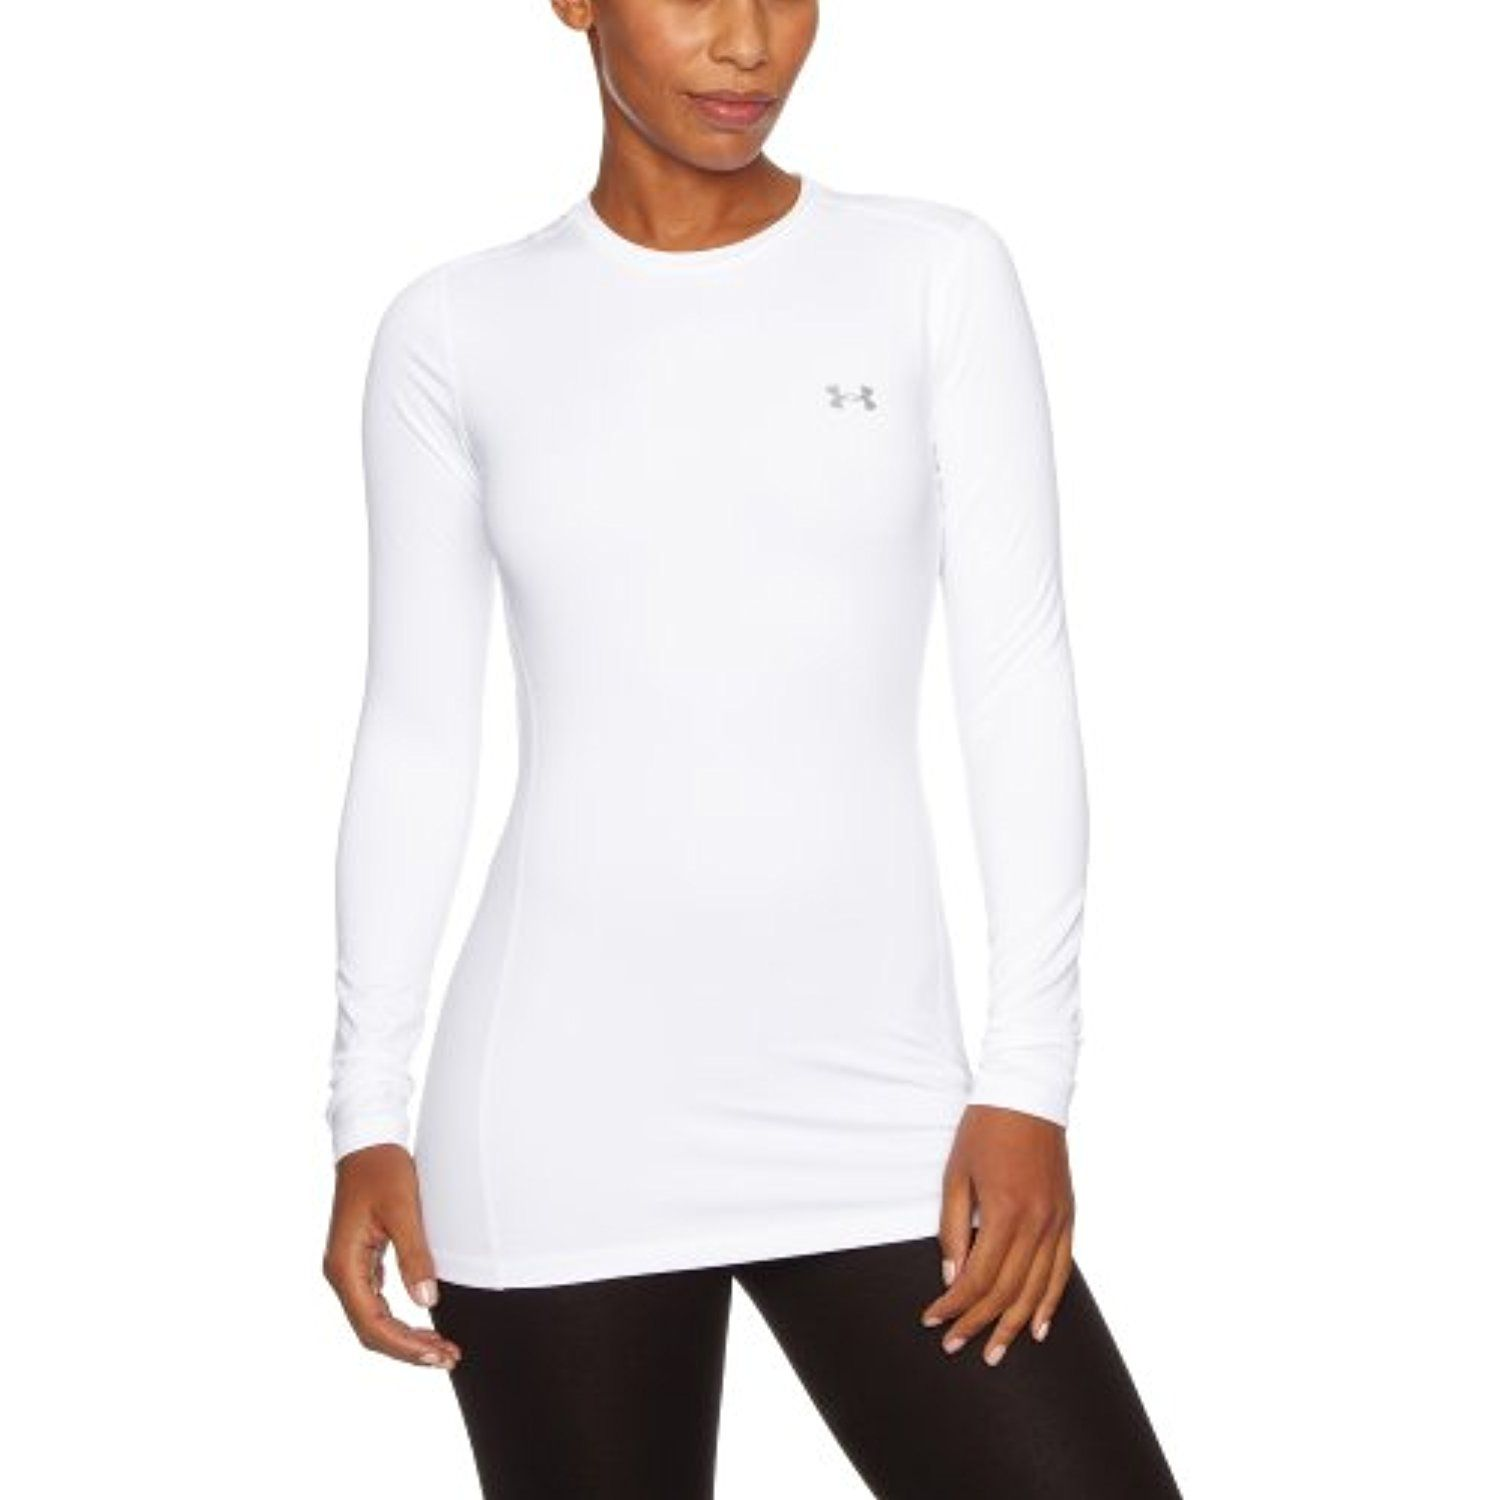 a72fbf5b710954 Under Armour Women's ColdGear Authentic Crew ** Click image to review more  details. (This is an affiliate link) #Shirts